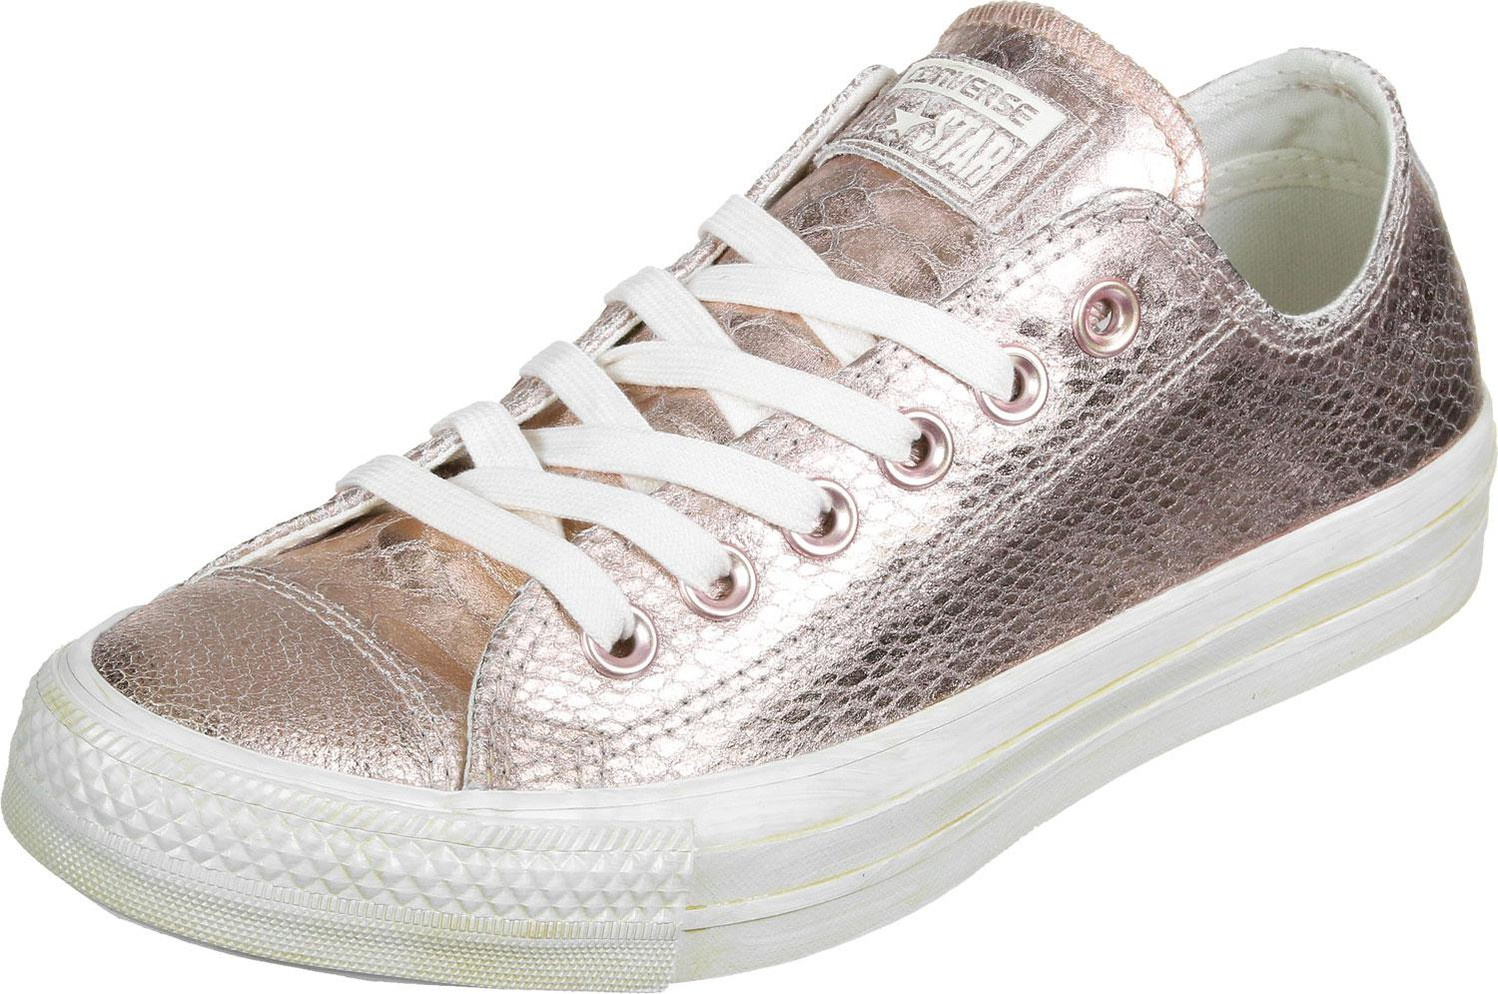 Converse Chuck Taylor All Star Ox rose goldwhite (542439C)